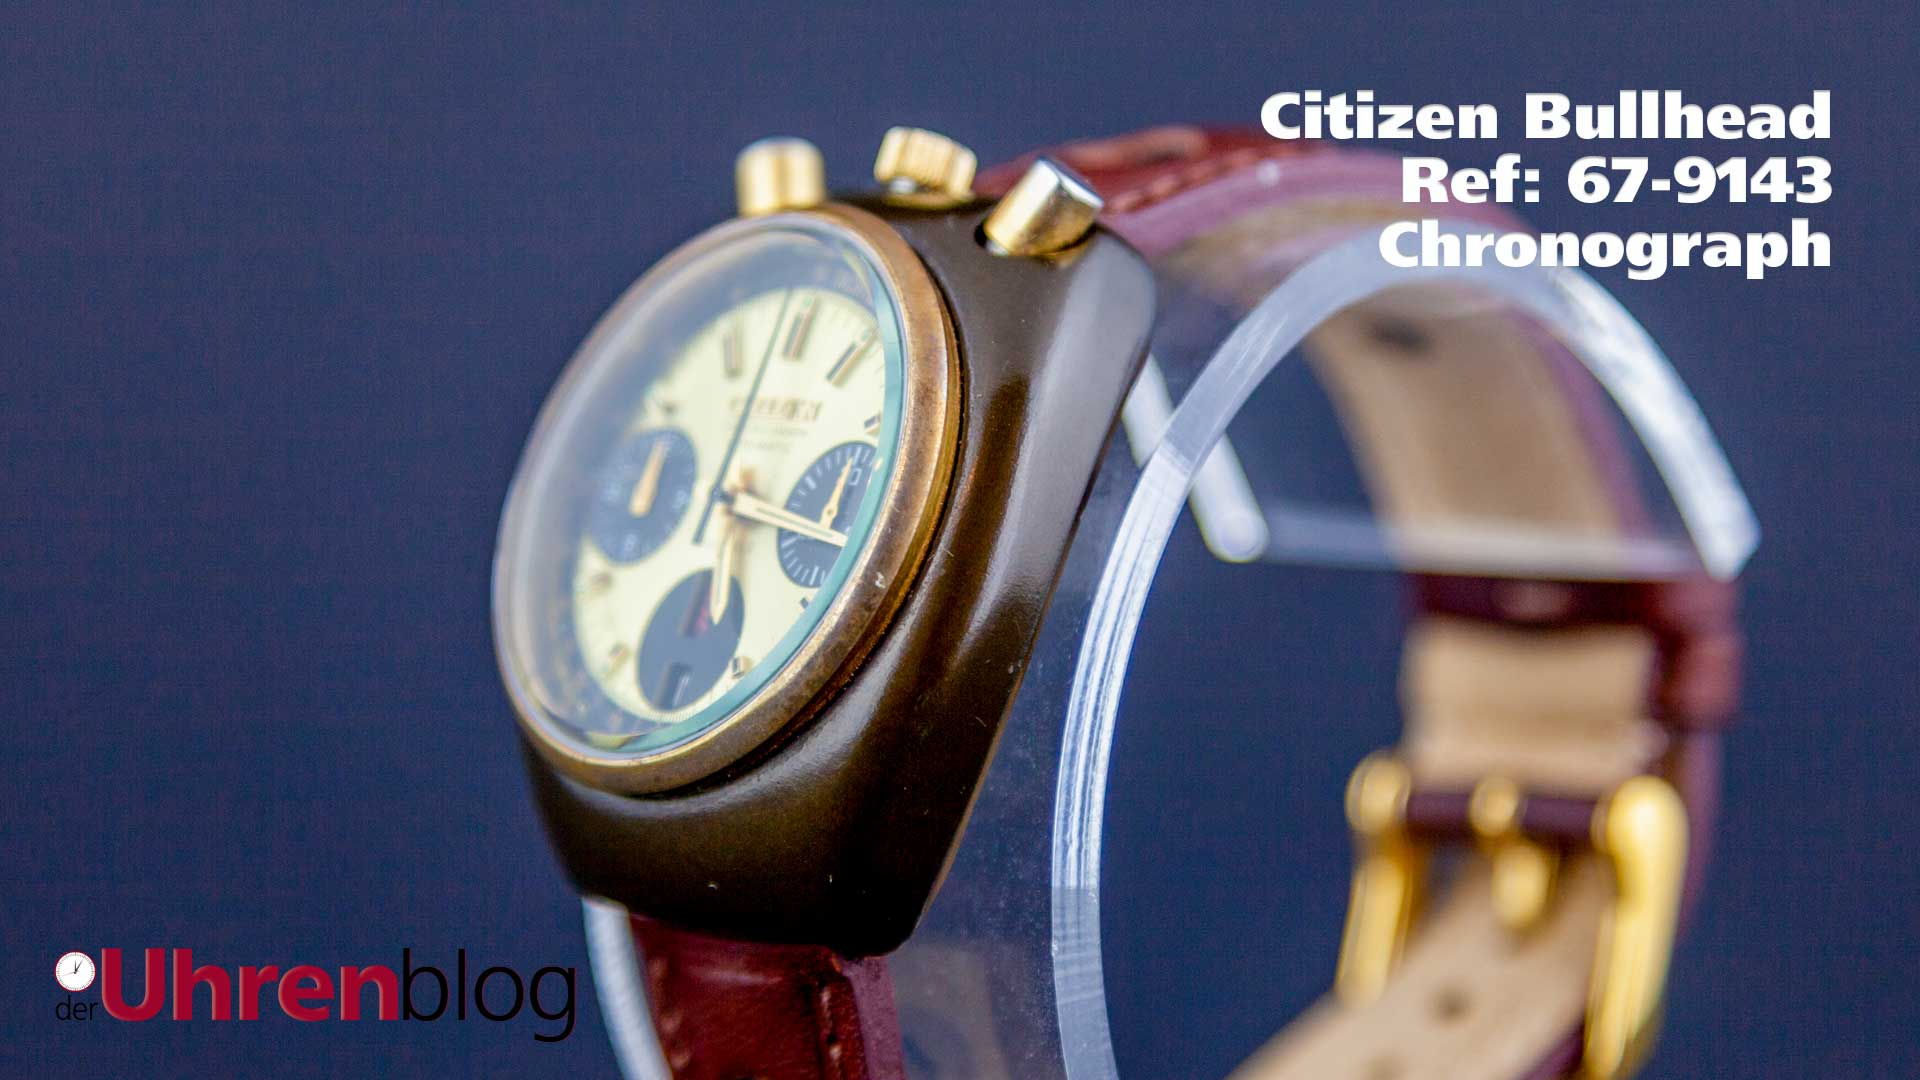 Citizen Bullhead Ref.67-9143